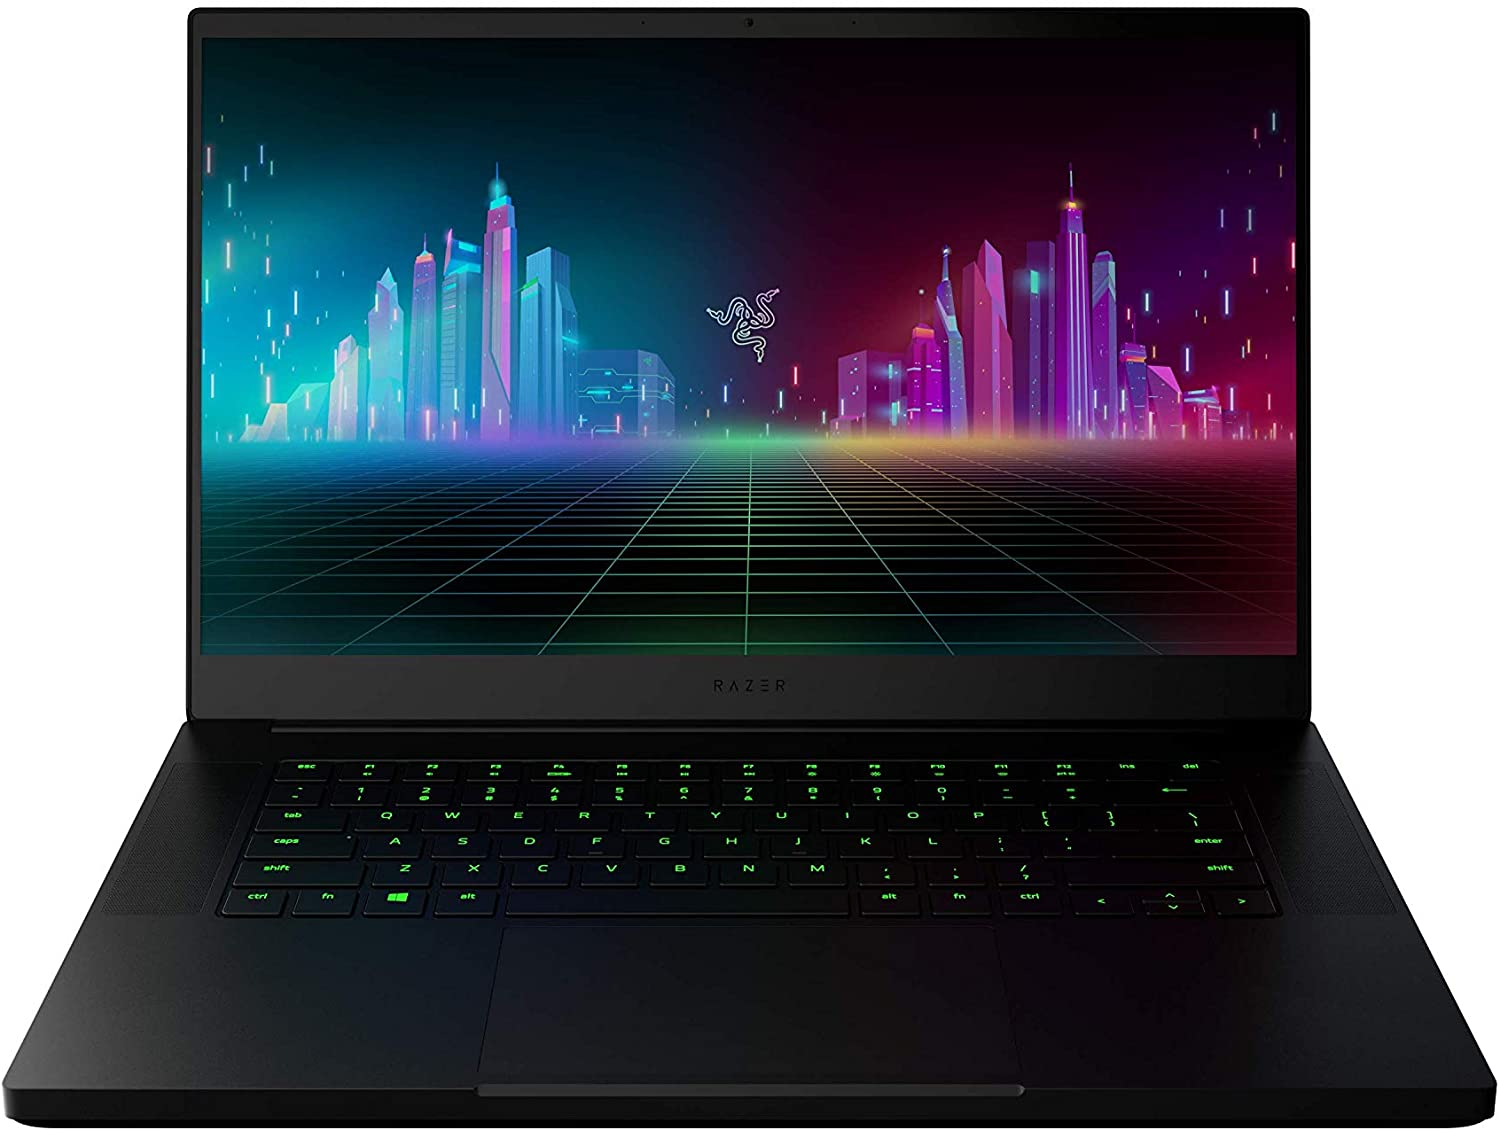 2020 Razer Blade 15 Base Model with Thunderbolt 3 will be just $999 USD for two days only